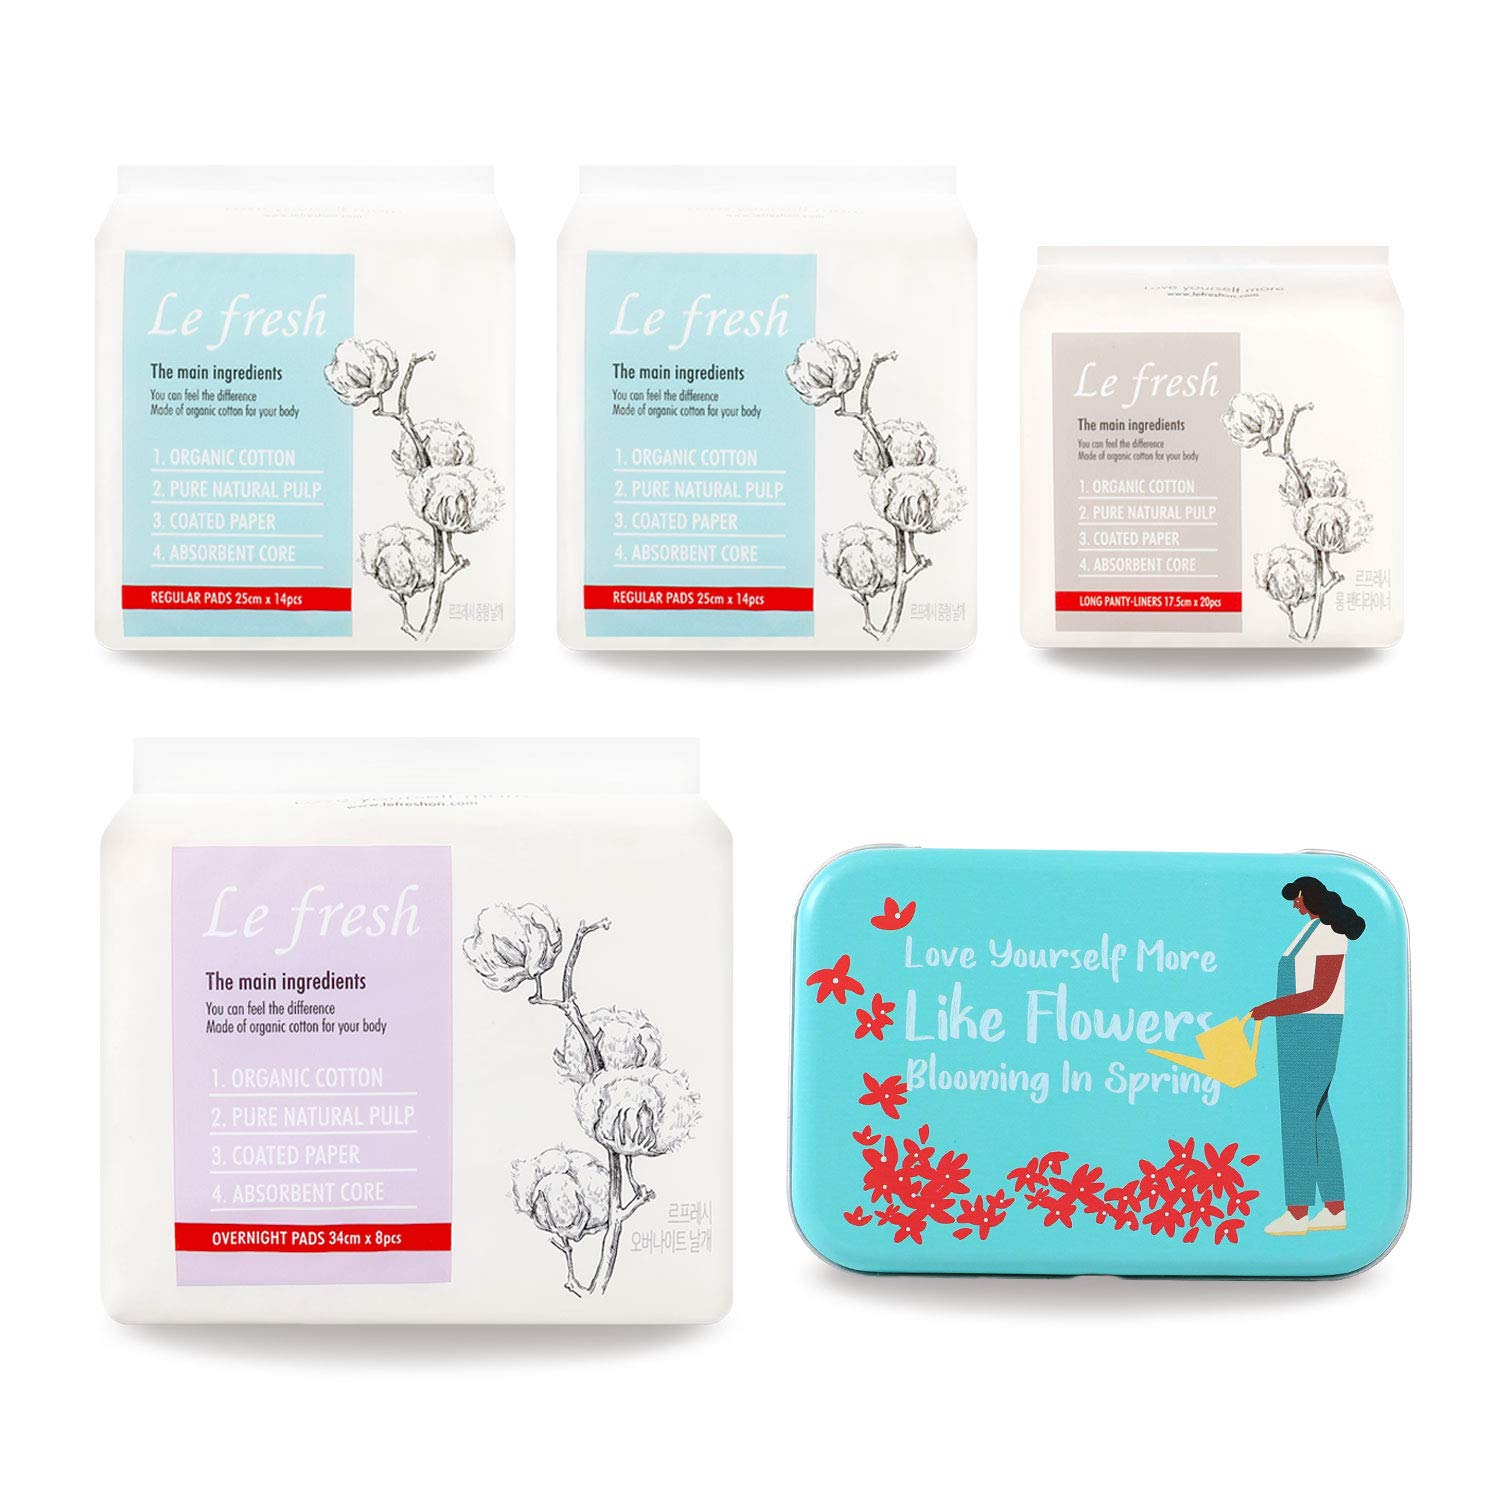 Lefresh Gift Package B - Organic Cotton Sanitary Pads for Women - Lefresh Panty Liners, 2 Packs of Regular, Overnight Menstrual Pads with Wings + Free Pocket Carrying tin